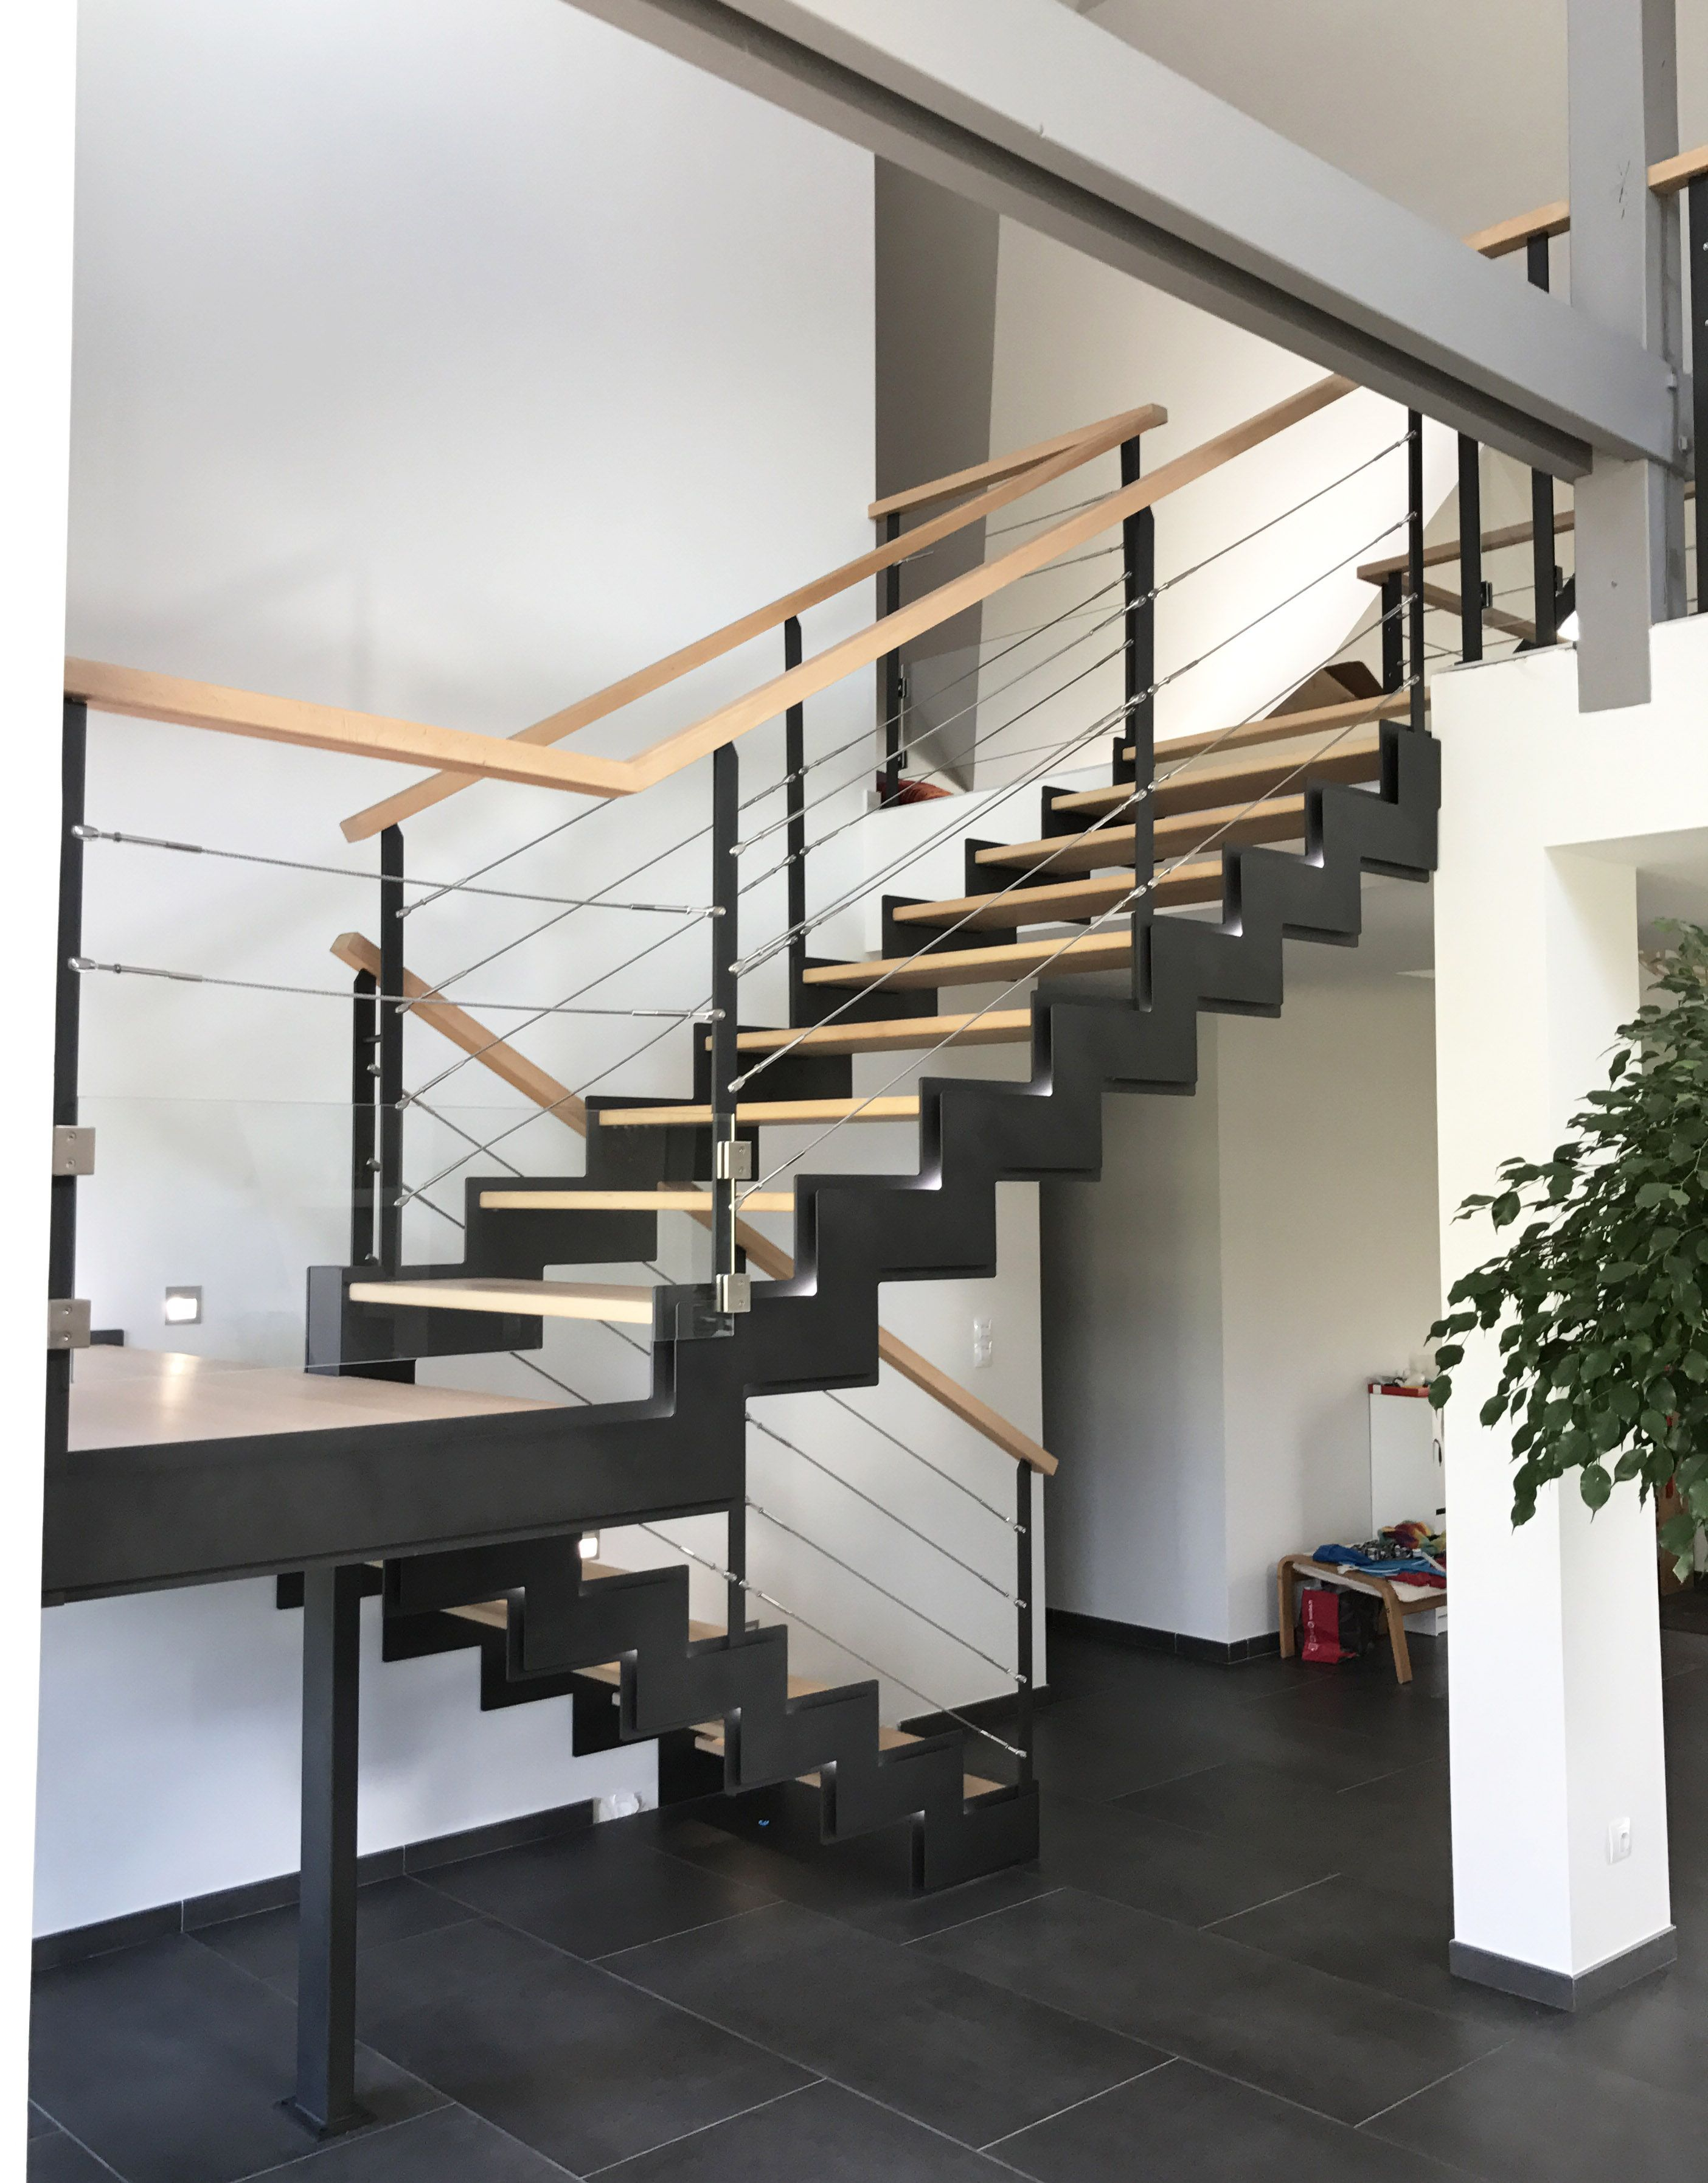 escalier int rieur demi tour avec palier interm diaire cet escalier double limons cr maill re. Black Bedroom Furniture Sets. Home Design Ideas